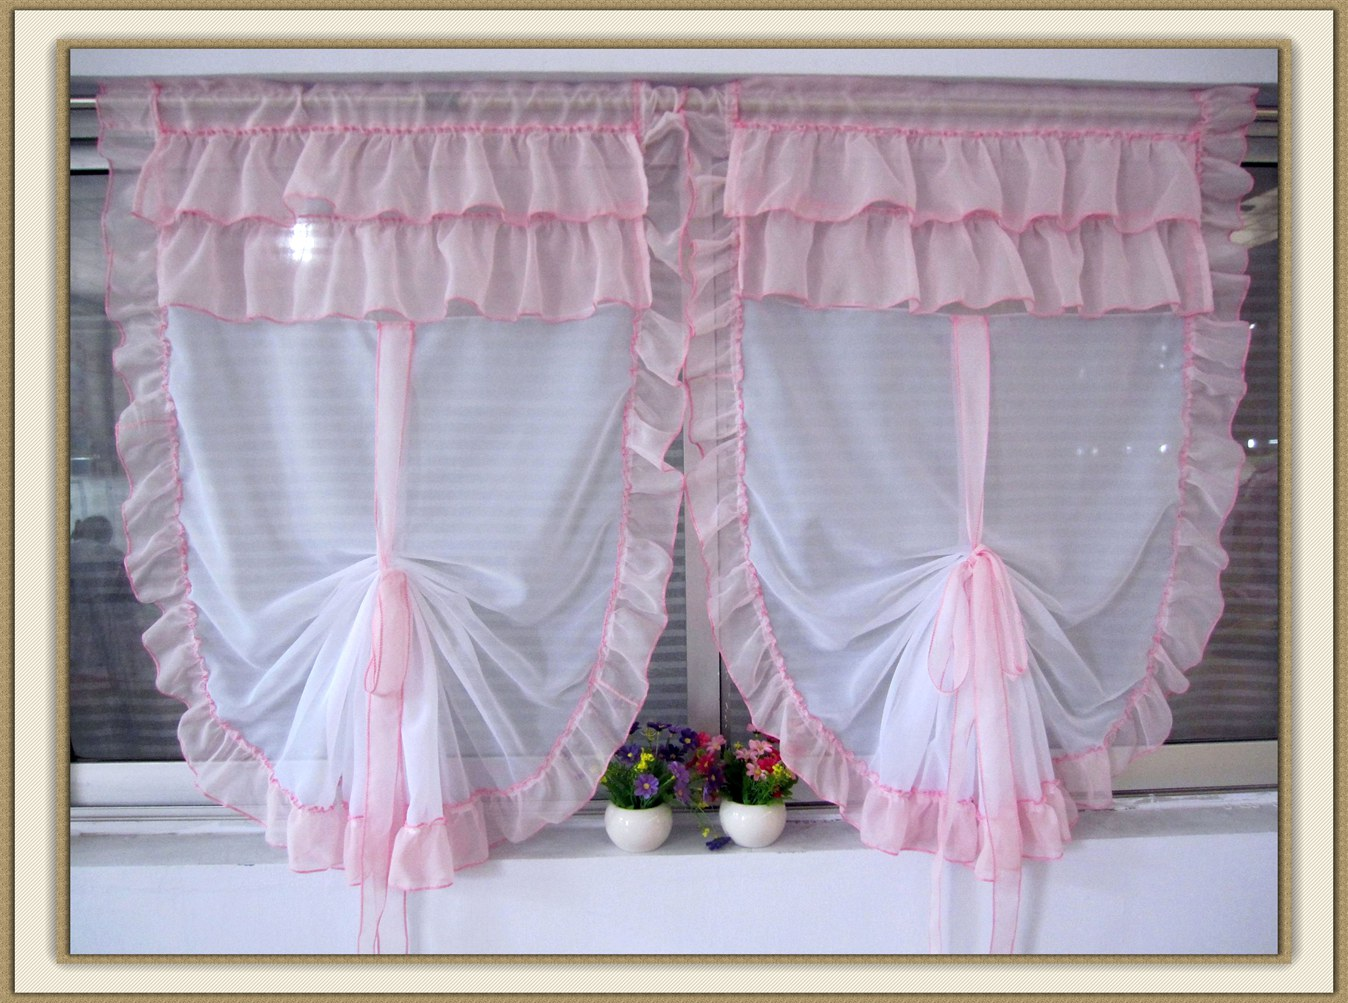 kitchen curtain mexican style 2016 hot tulle for bay window roman blinds ...